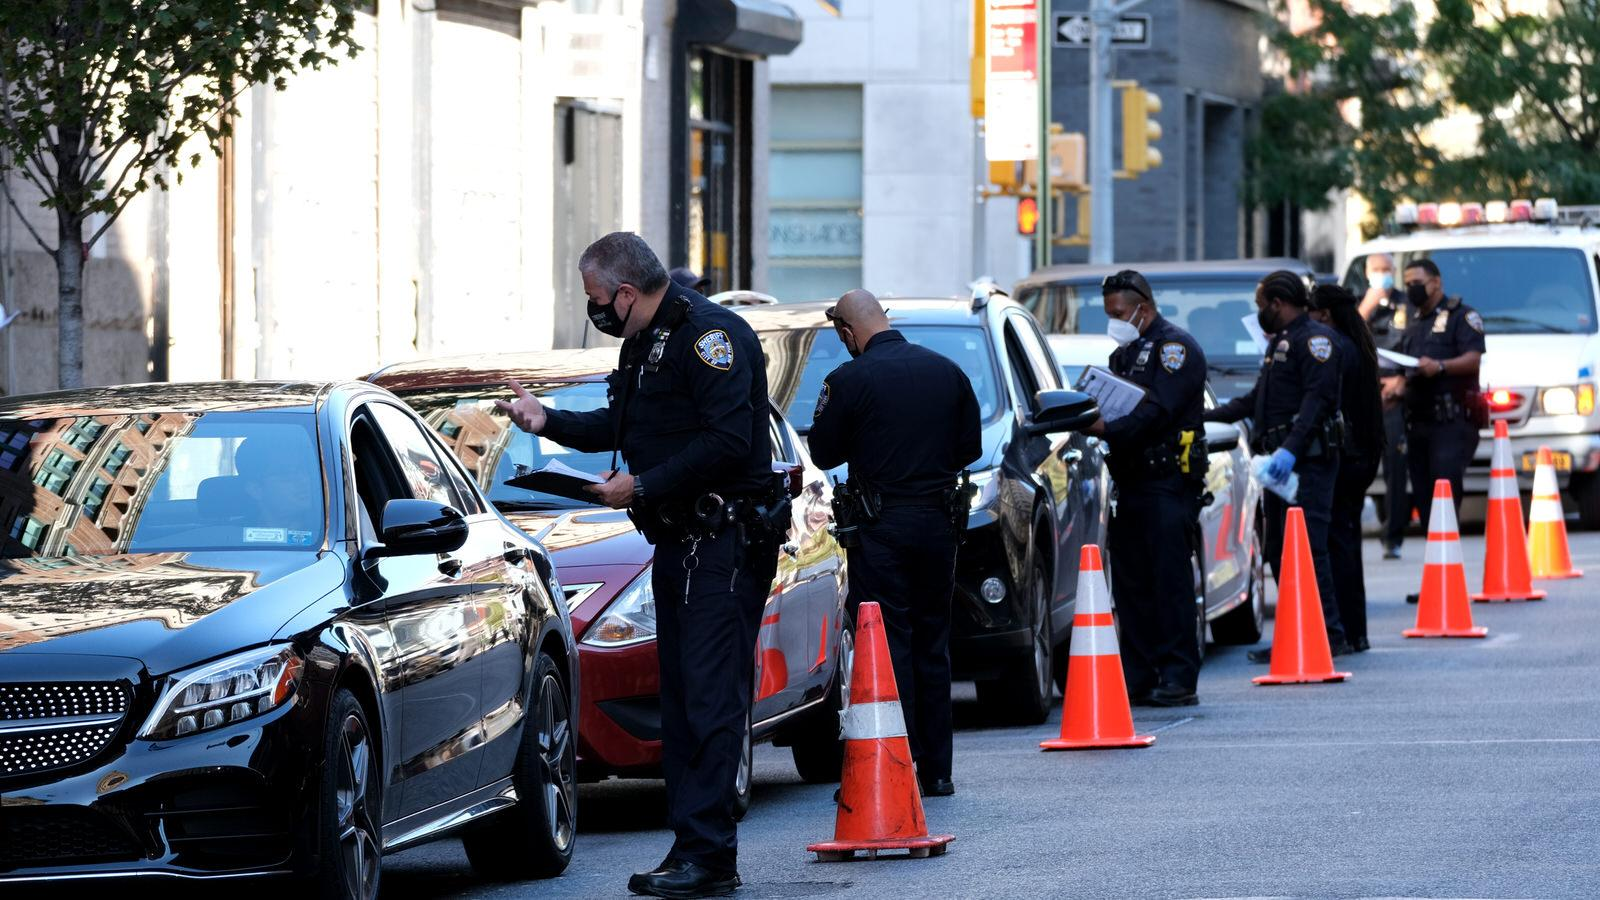 Manhattan - September 22, 2020 - New York City Sheriff Deputies are seen manning a Covid-19 checkpoint and stopping every car coming out of the Holland Tunnel in downtown Manhattan Tuesday afternoon. (Luiz C. Ribeiro for New York Daily News)